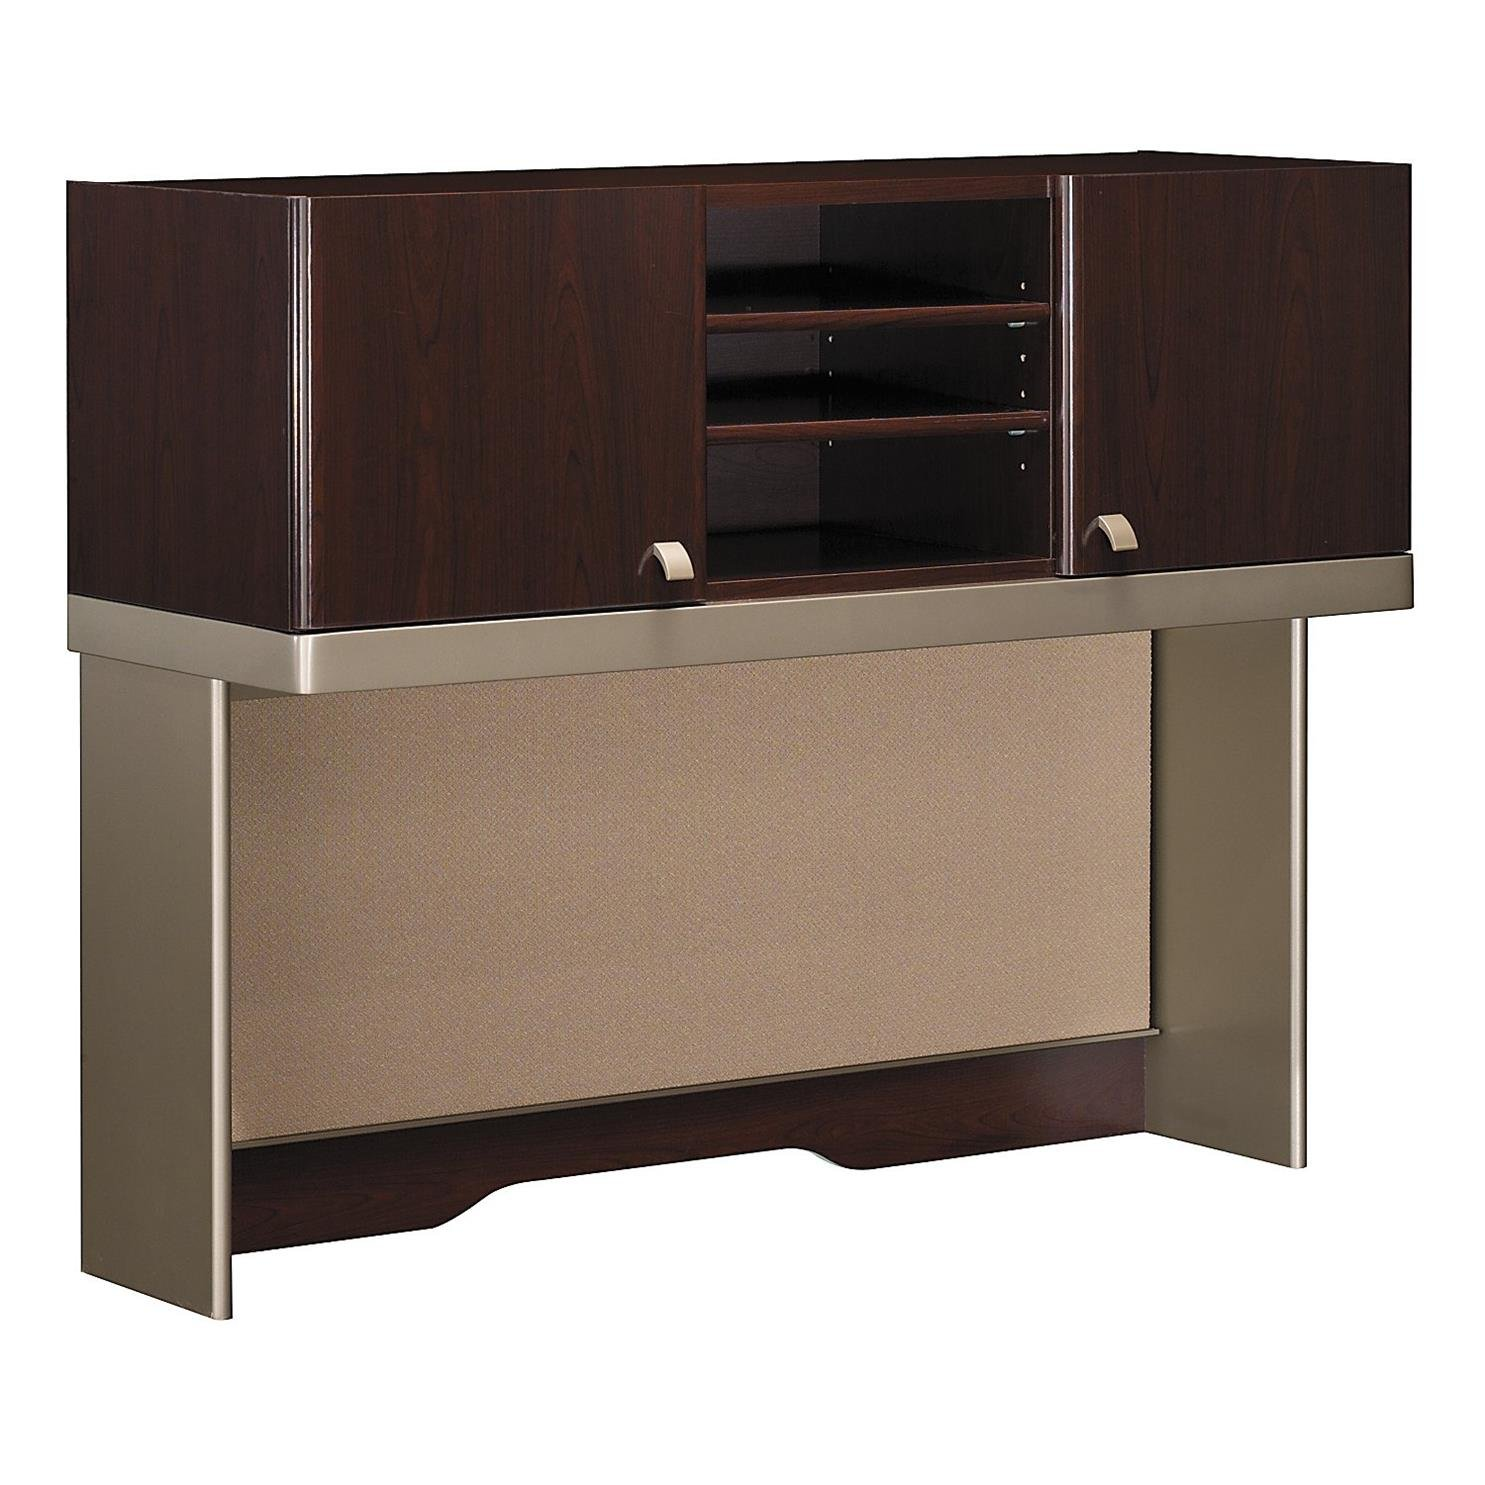 BUSH BUSINESS FURNITURE QUANTUM 47-inch TALL HUTCH